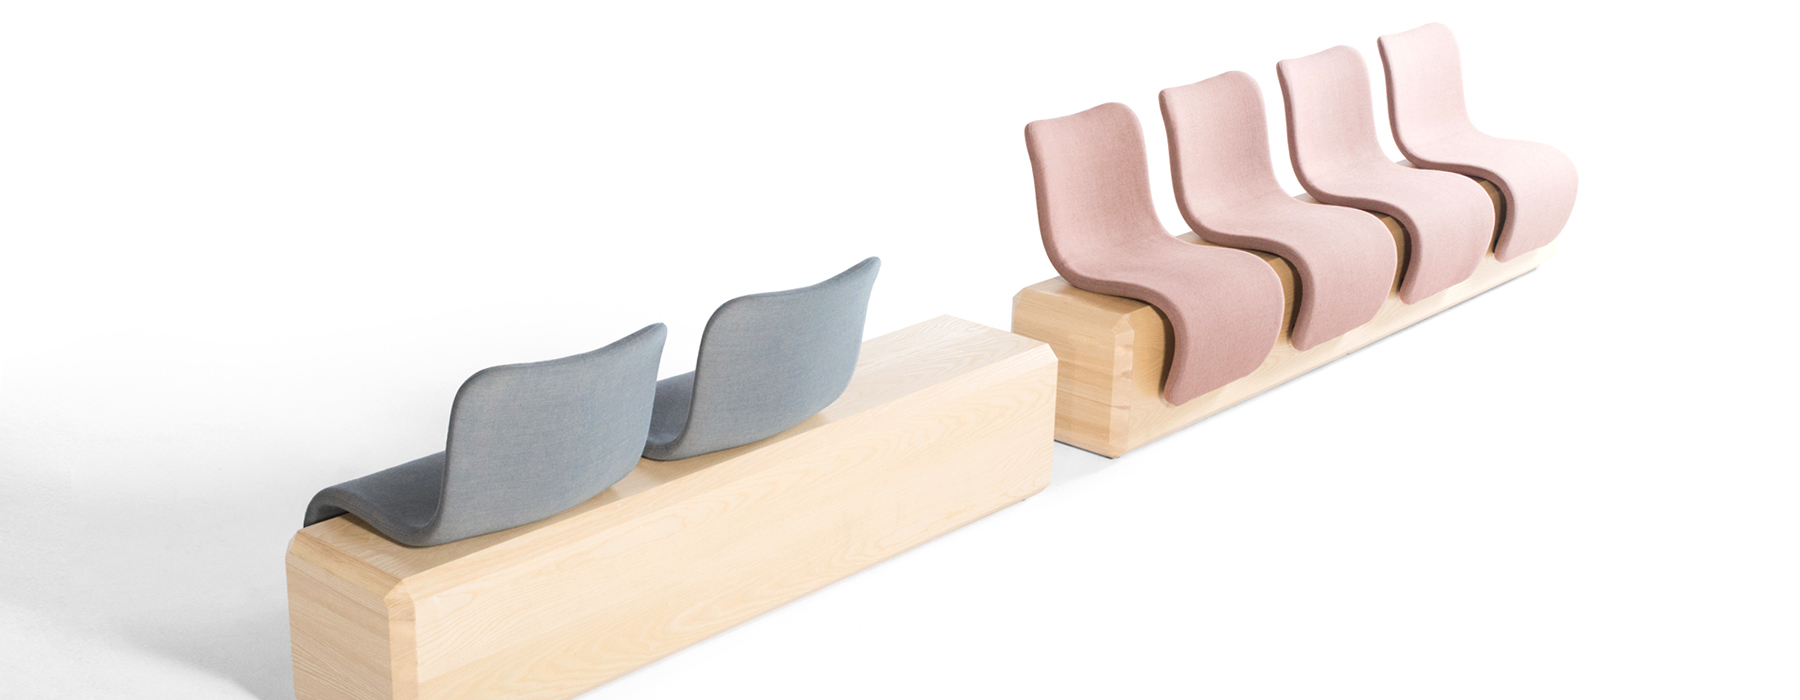 Ascent furniture collection was aimed at public spaces and is available in several colors